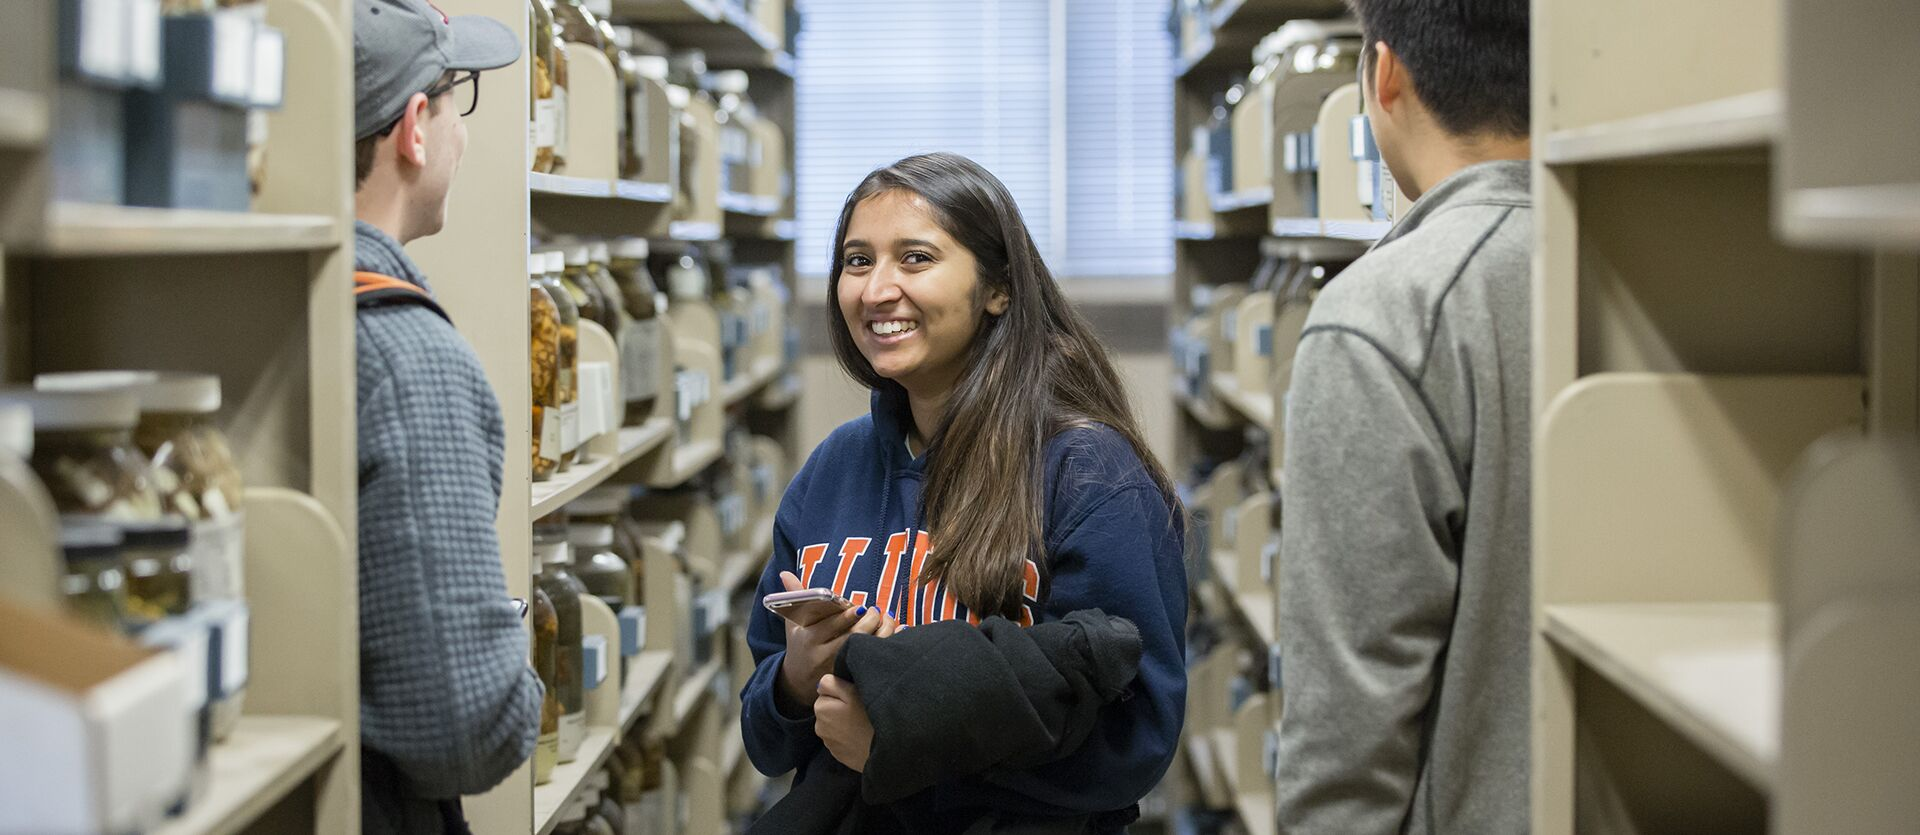 A student smiles as she stands amid shelves with jars of snake specimens